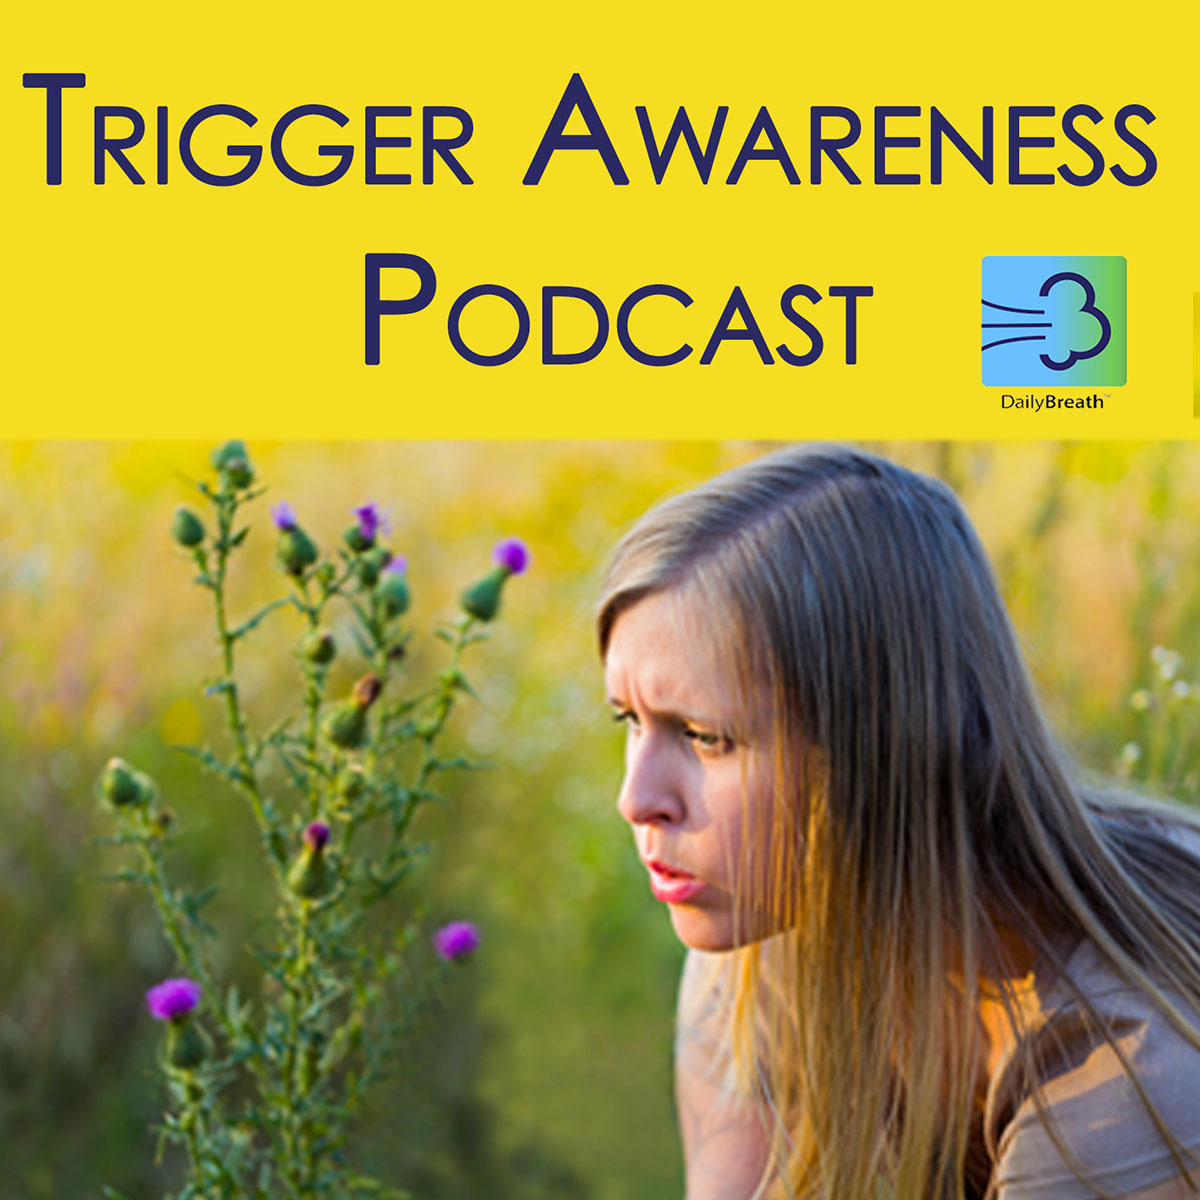 Photo of graphic for the Trigger Awareness Podcast with photo of a woman in a field surrounded by weeds